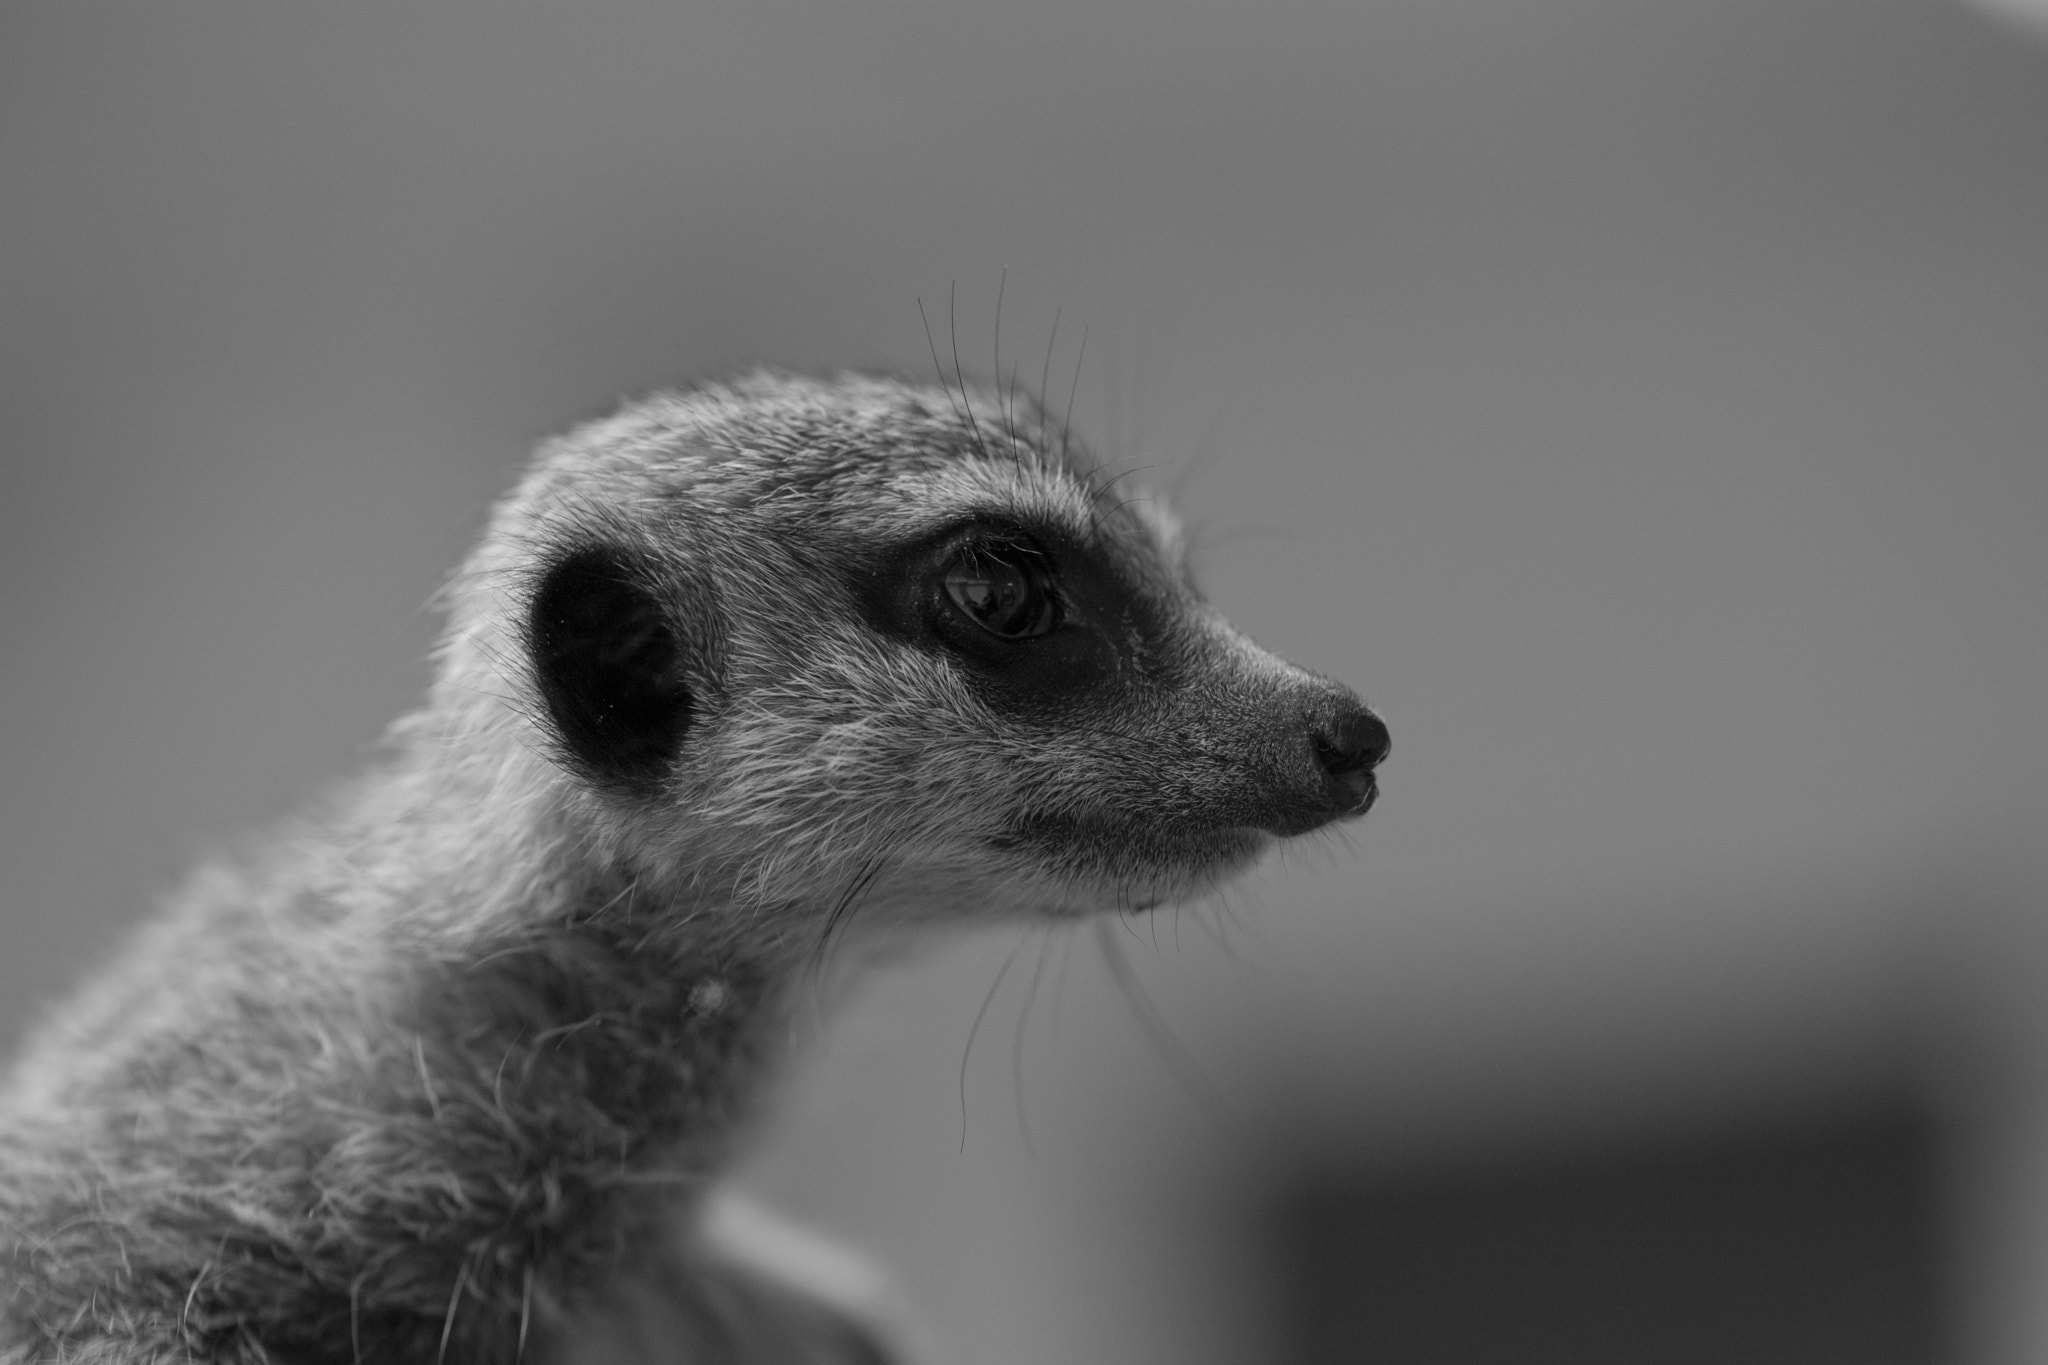 Photograph Baby Meerkat - Simples! by Naomi Turner on 500px